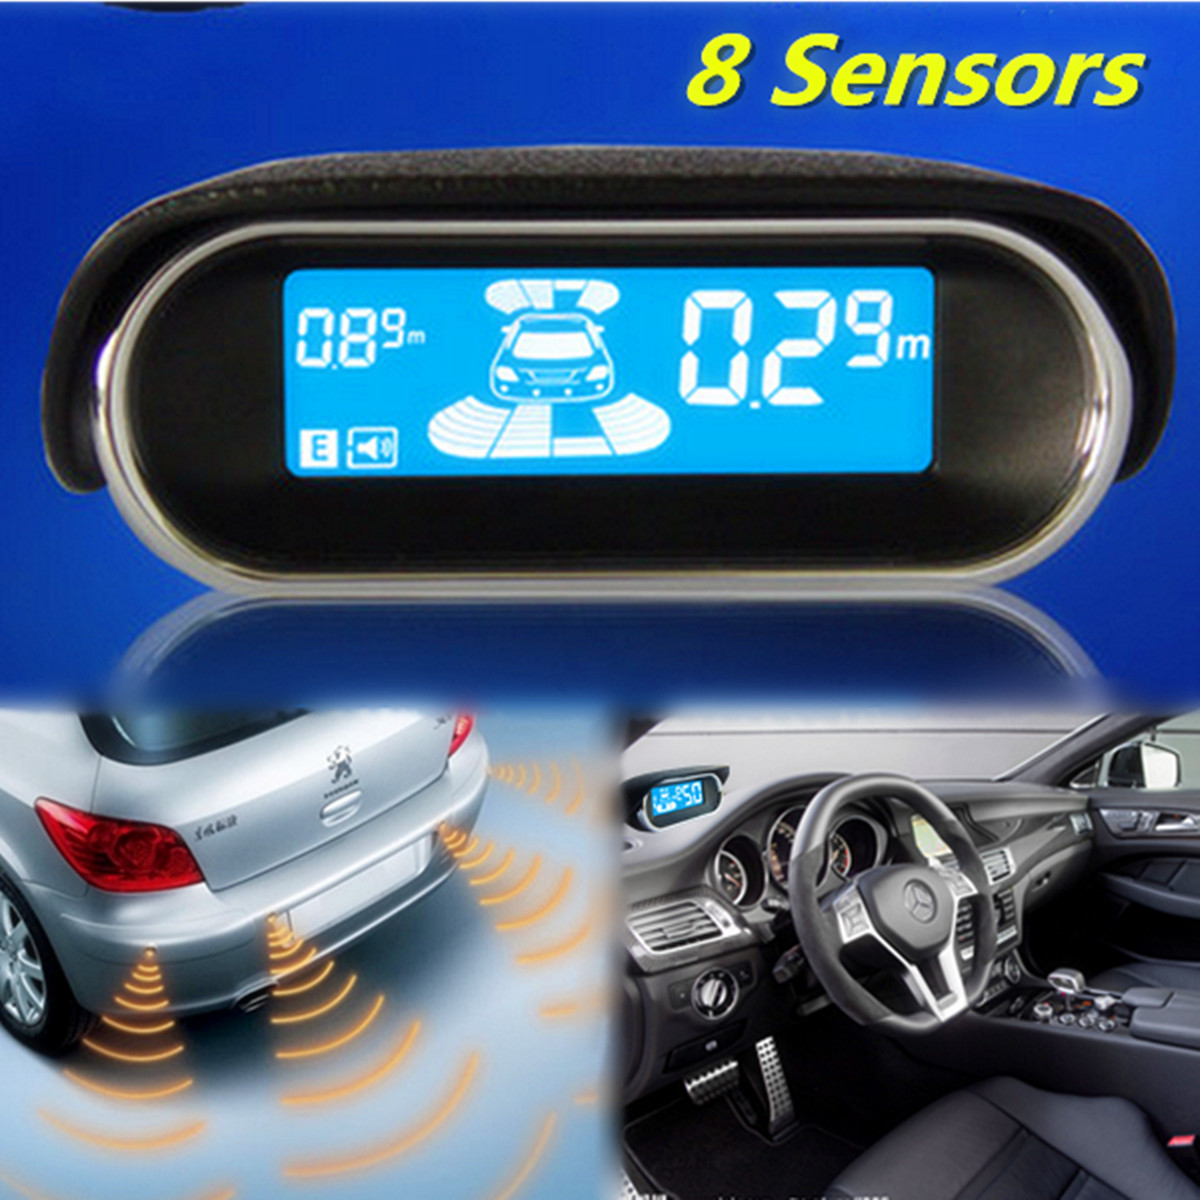 Vehicle Parking Sensors Car Reverse Backup Radar 8 Eight Sensor Circuit For Security System With Display